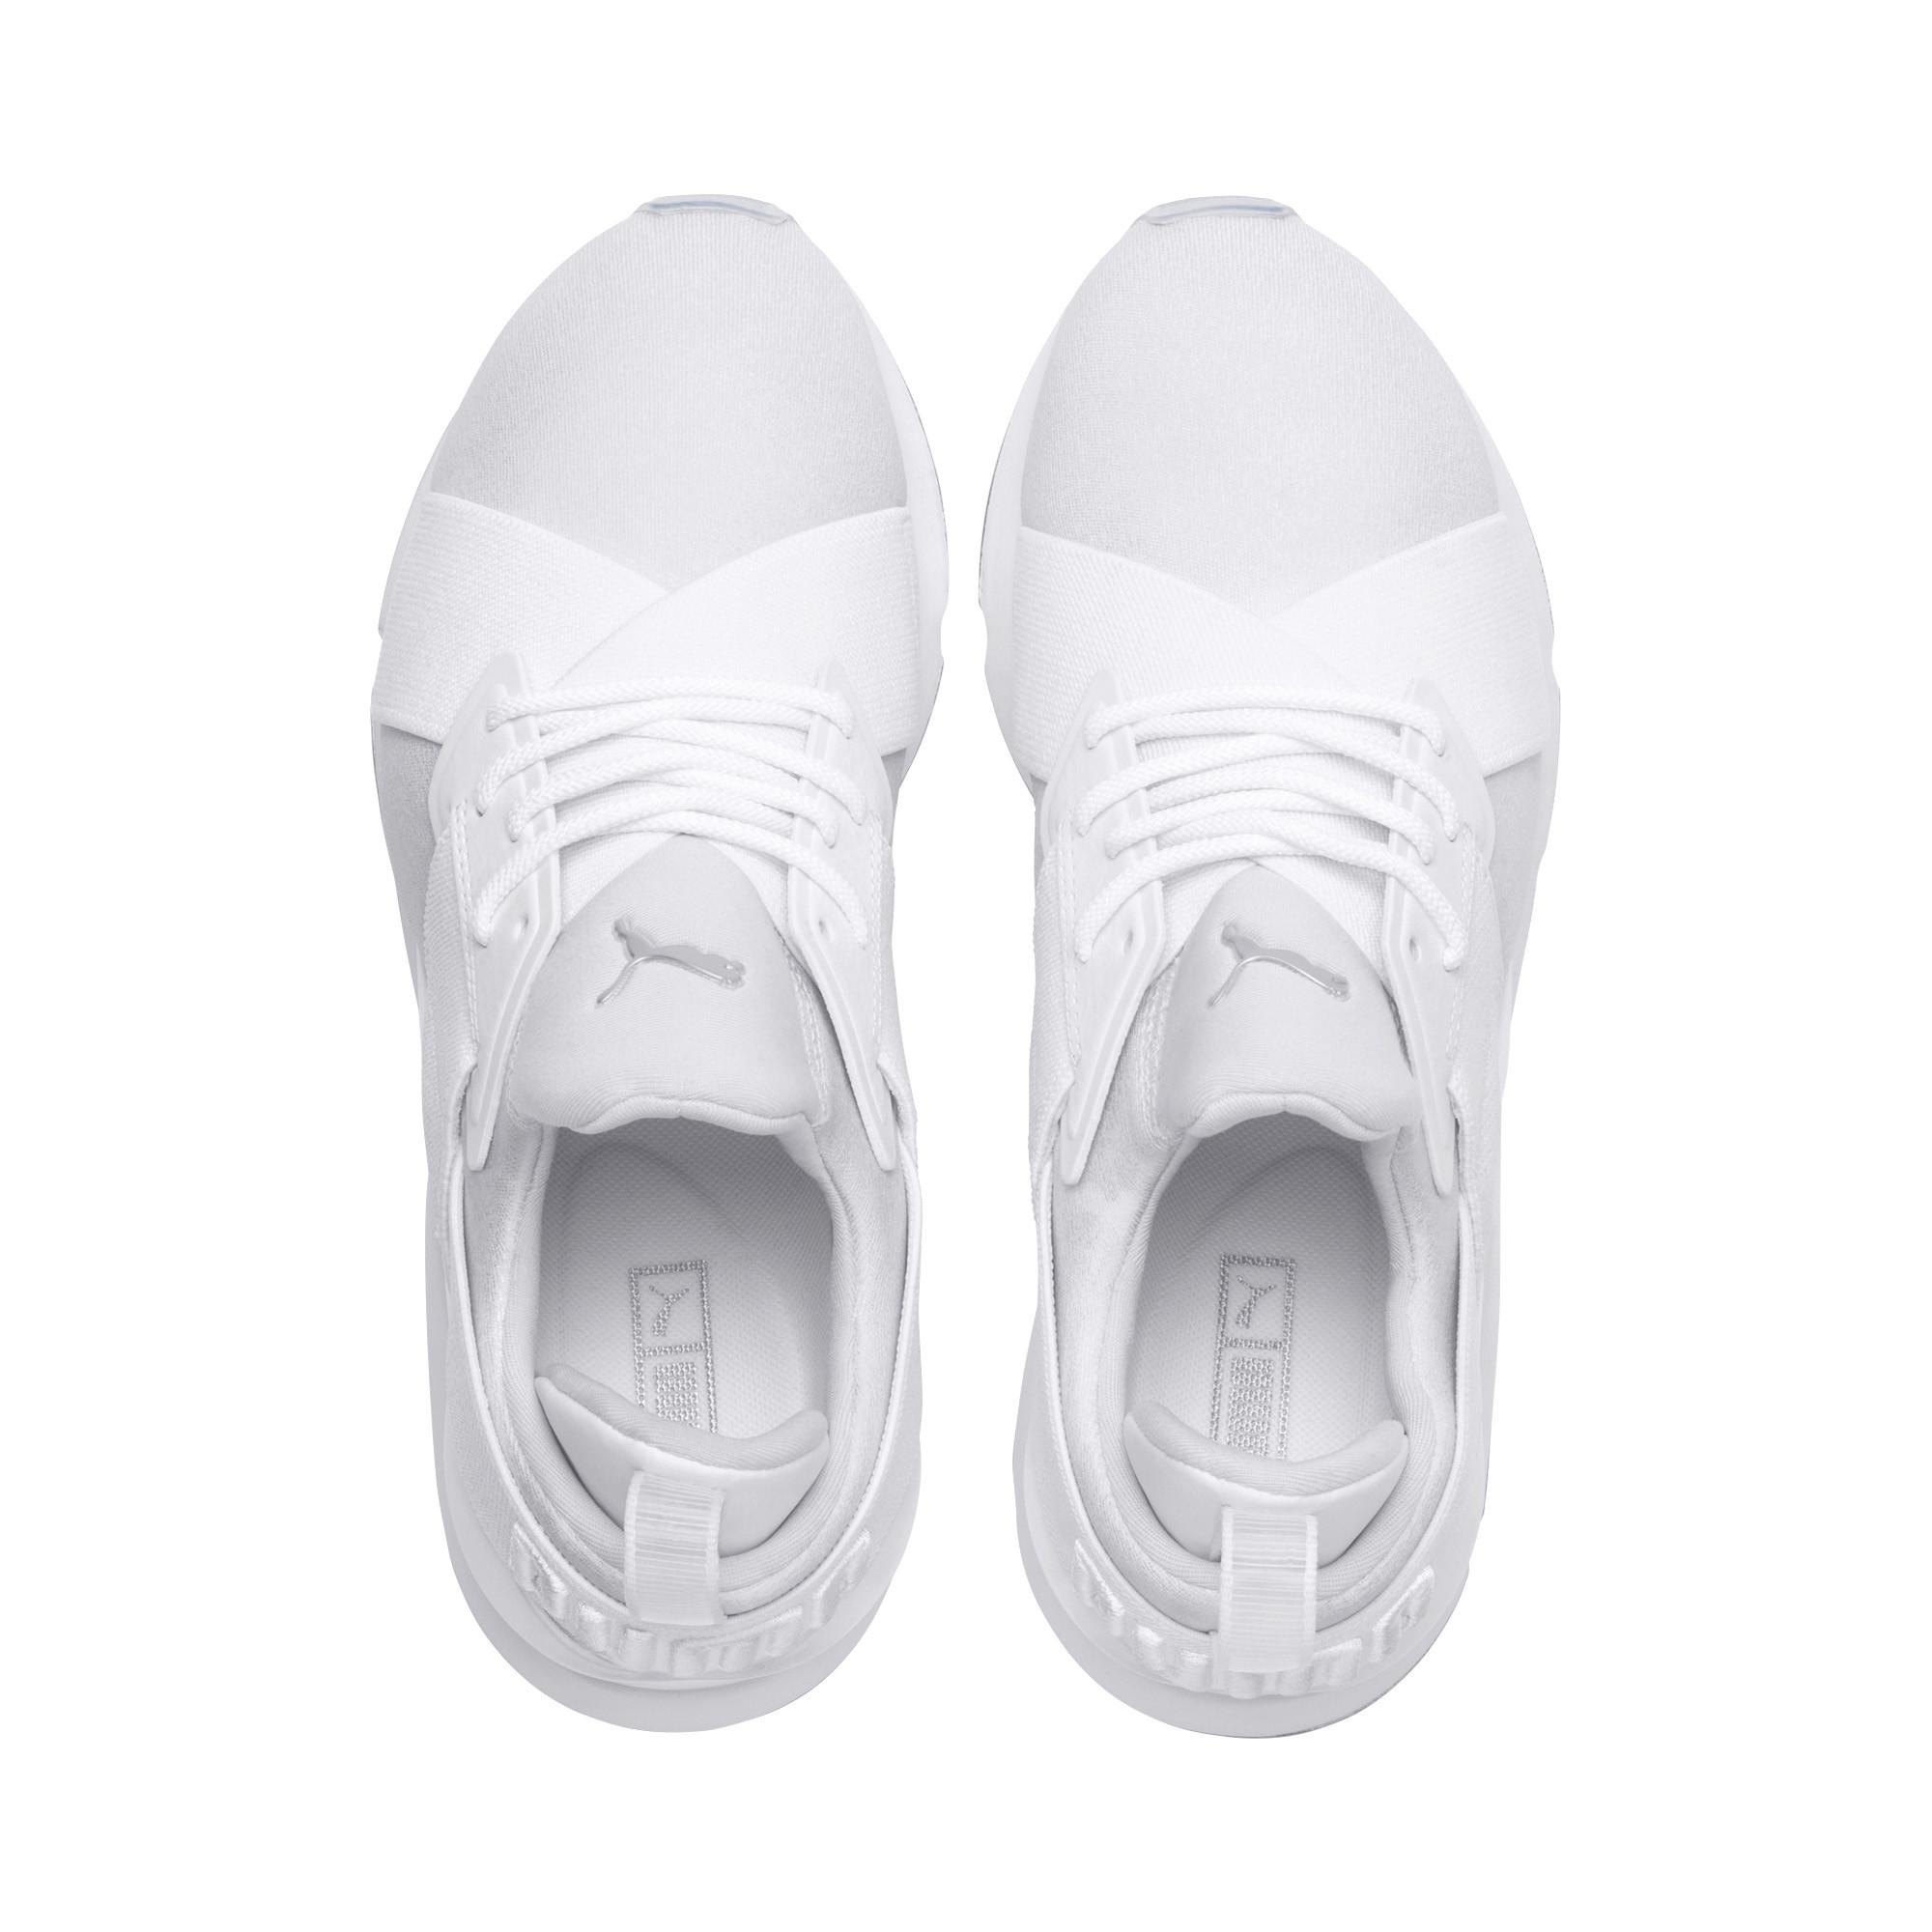 muse ice women's sneakers